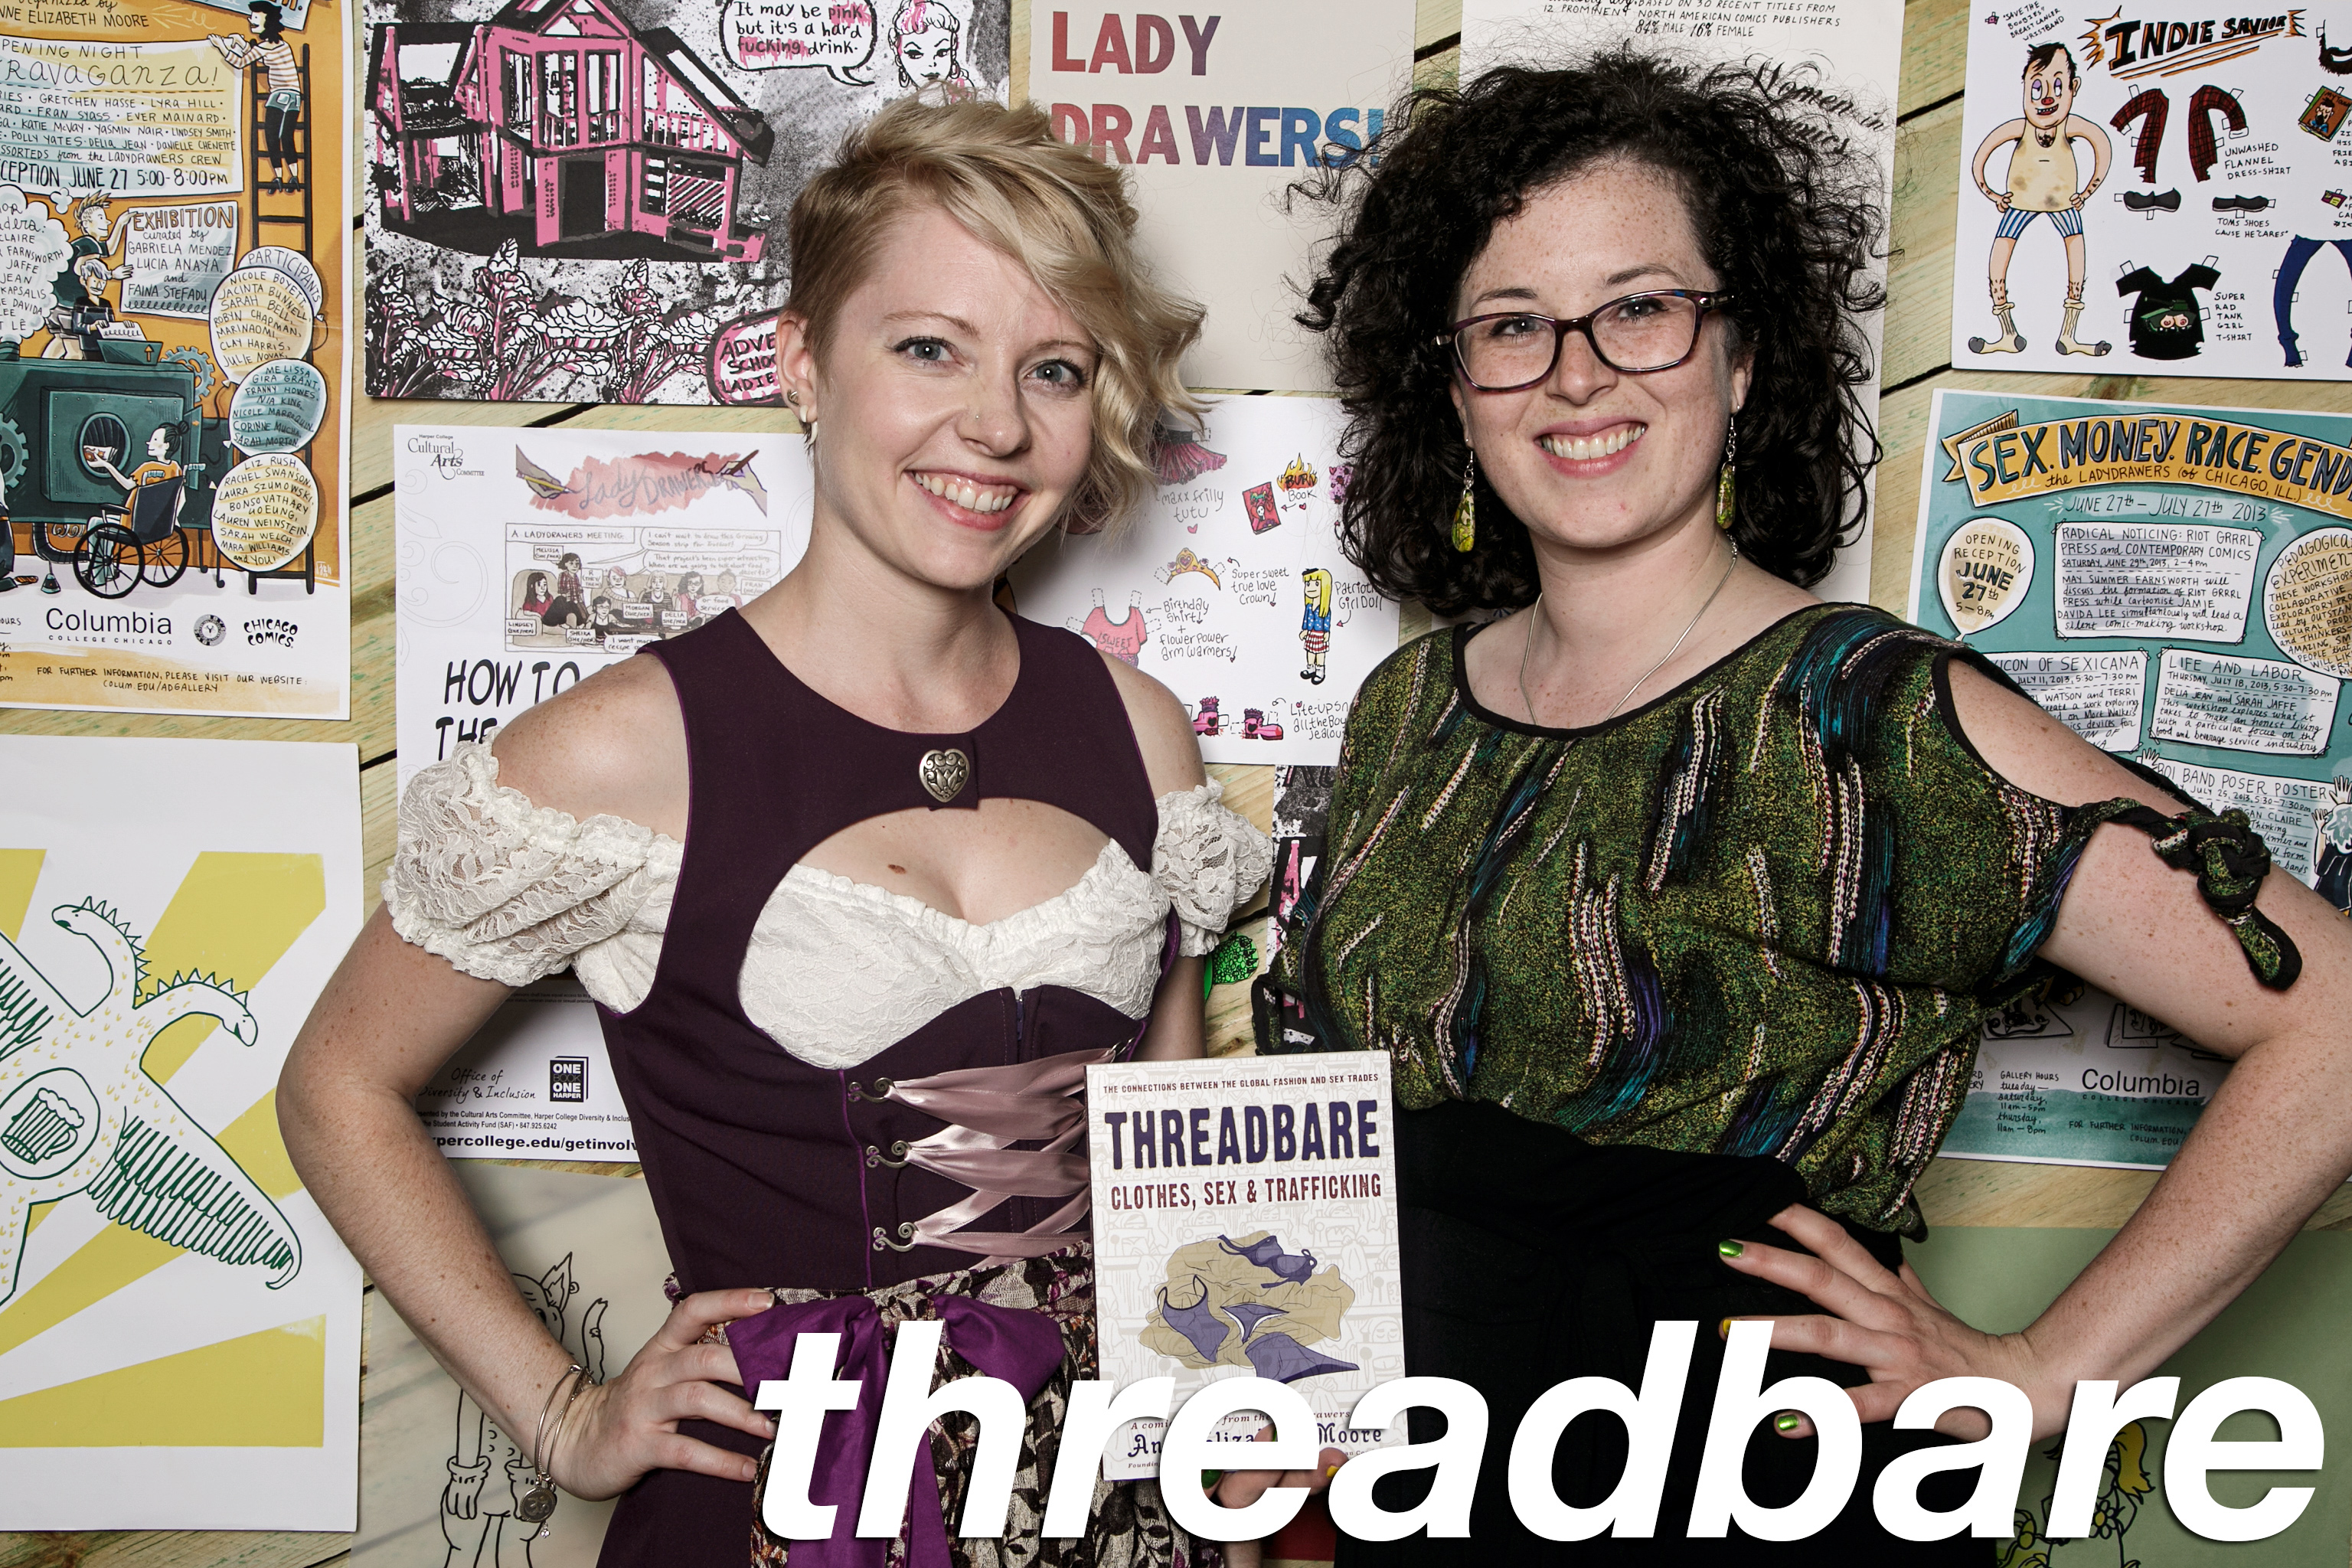 photo booth portraits from threadbare, june 2016